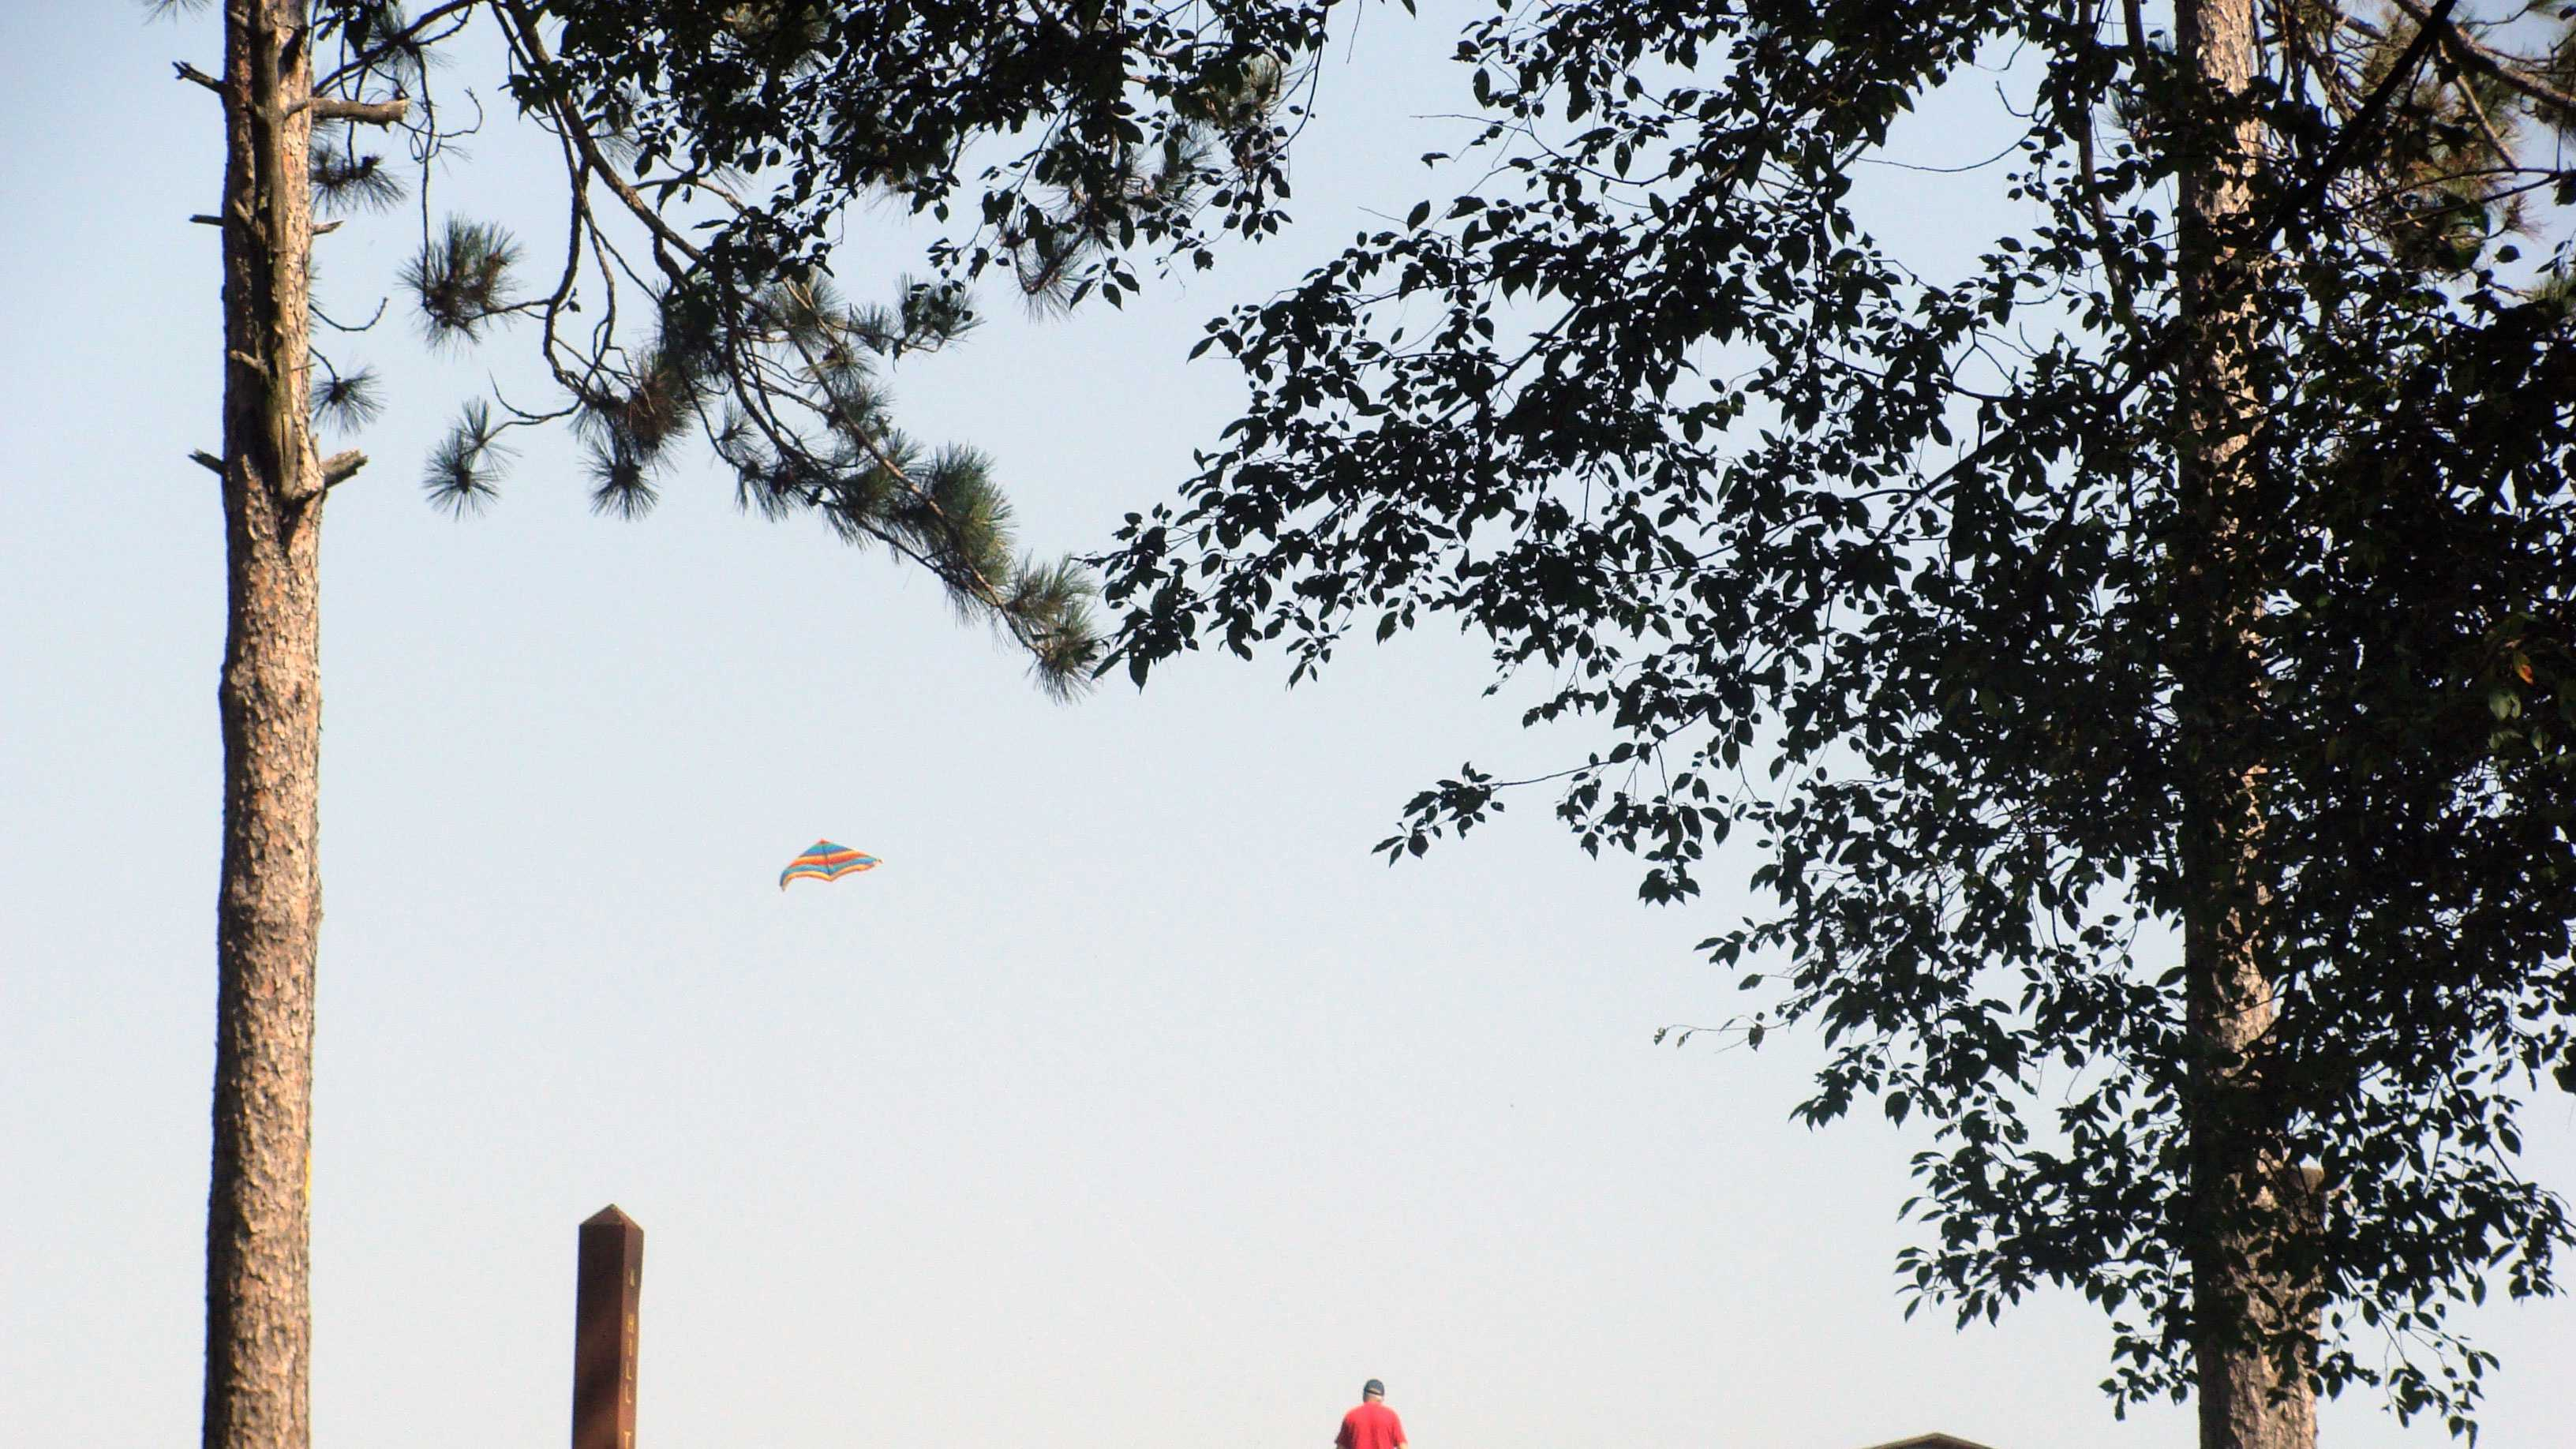 The crest of Mount Pisgah is an excellent area for kite flying.